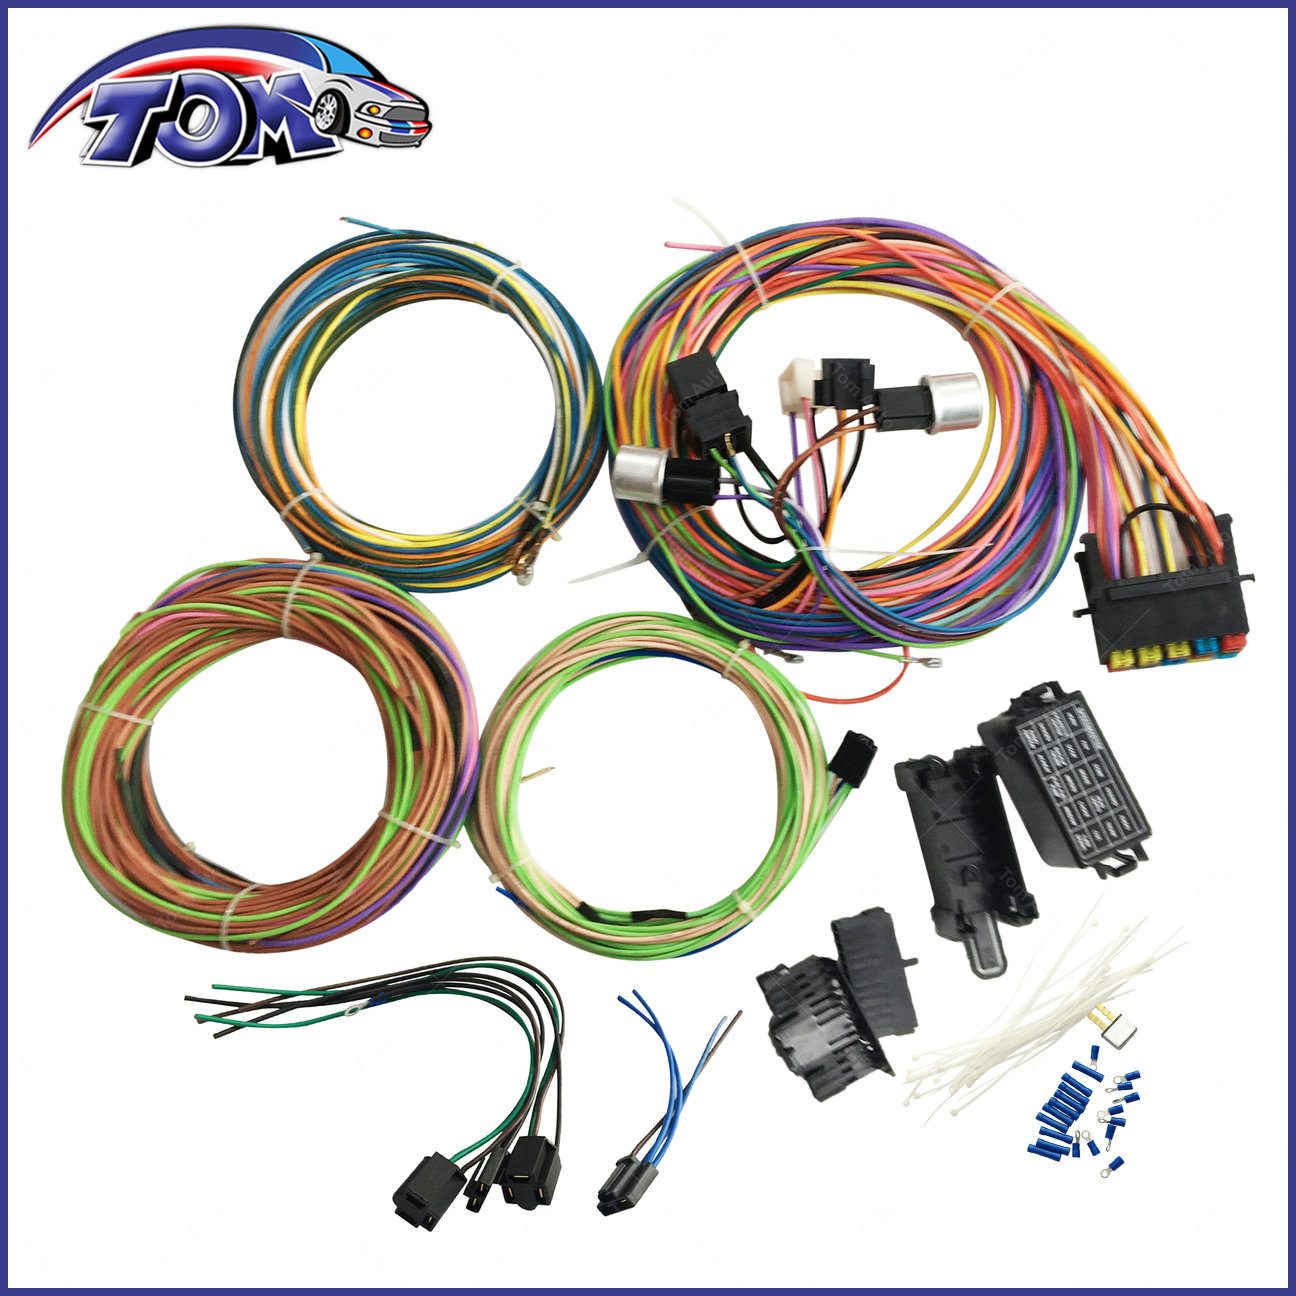 Details about 20 CIRCUIT WIRING HARNESS MINI FUSE CHEVY FORD HOTRODS on